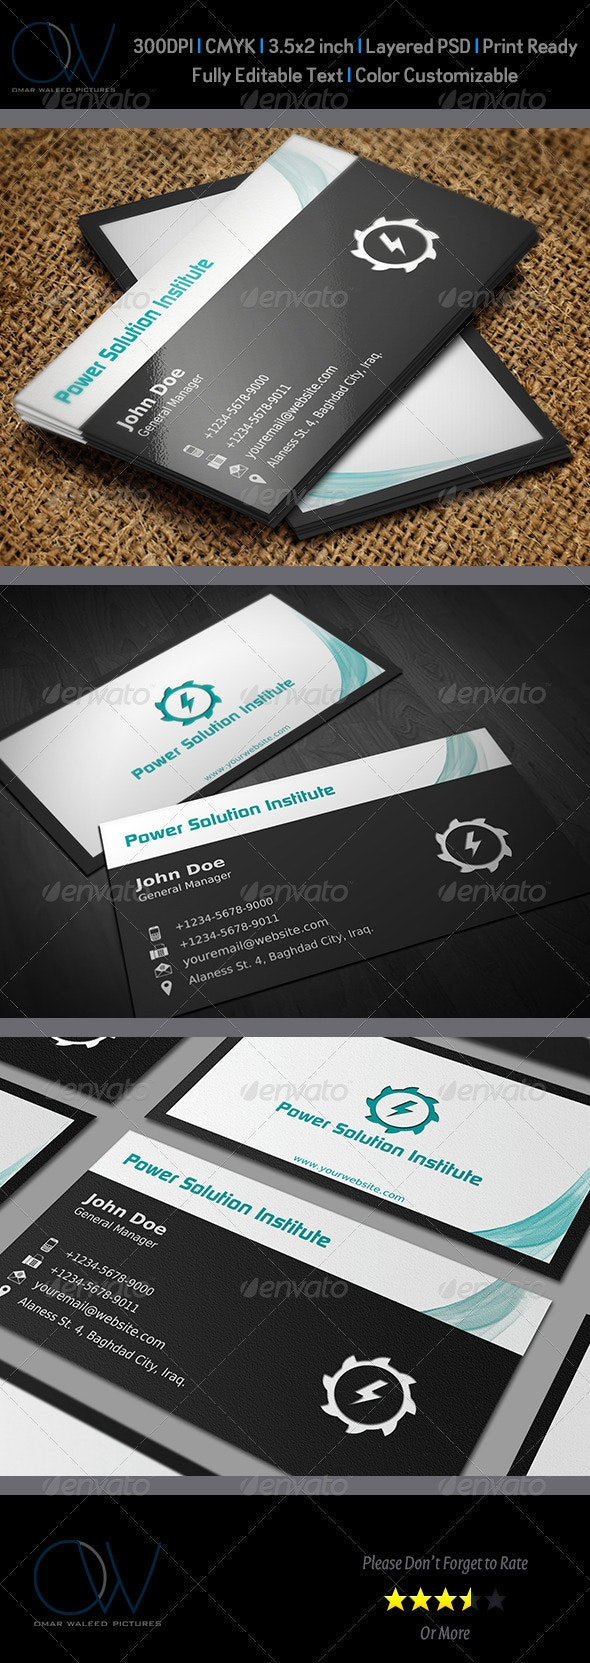 Classic Business Card Vol. 2 - Corporate Business Cards